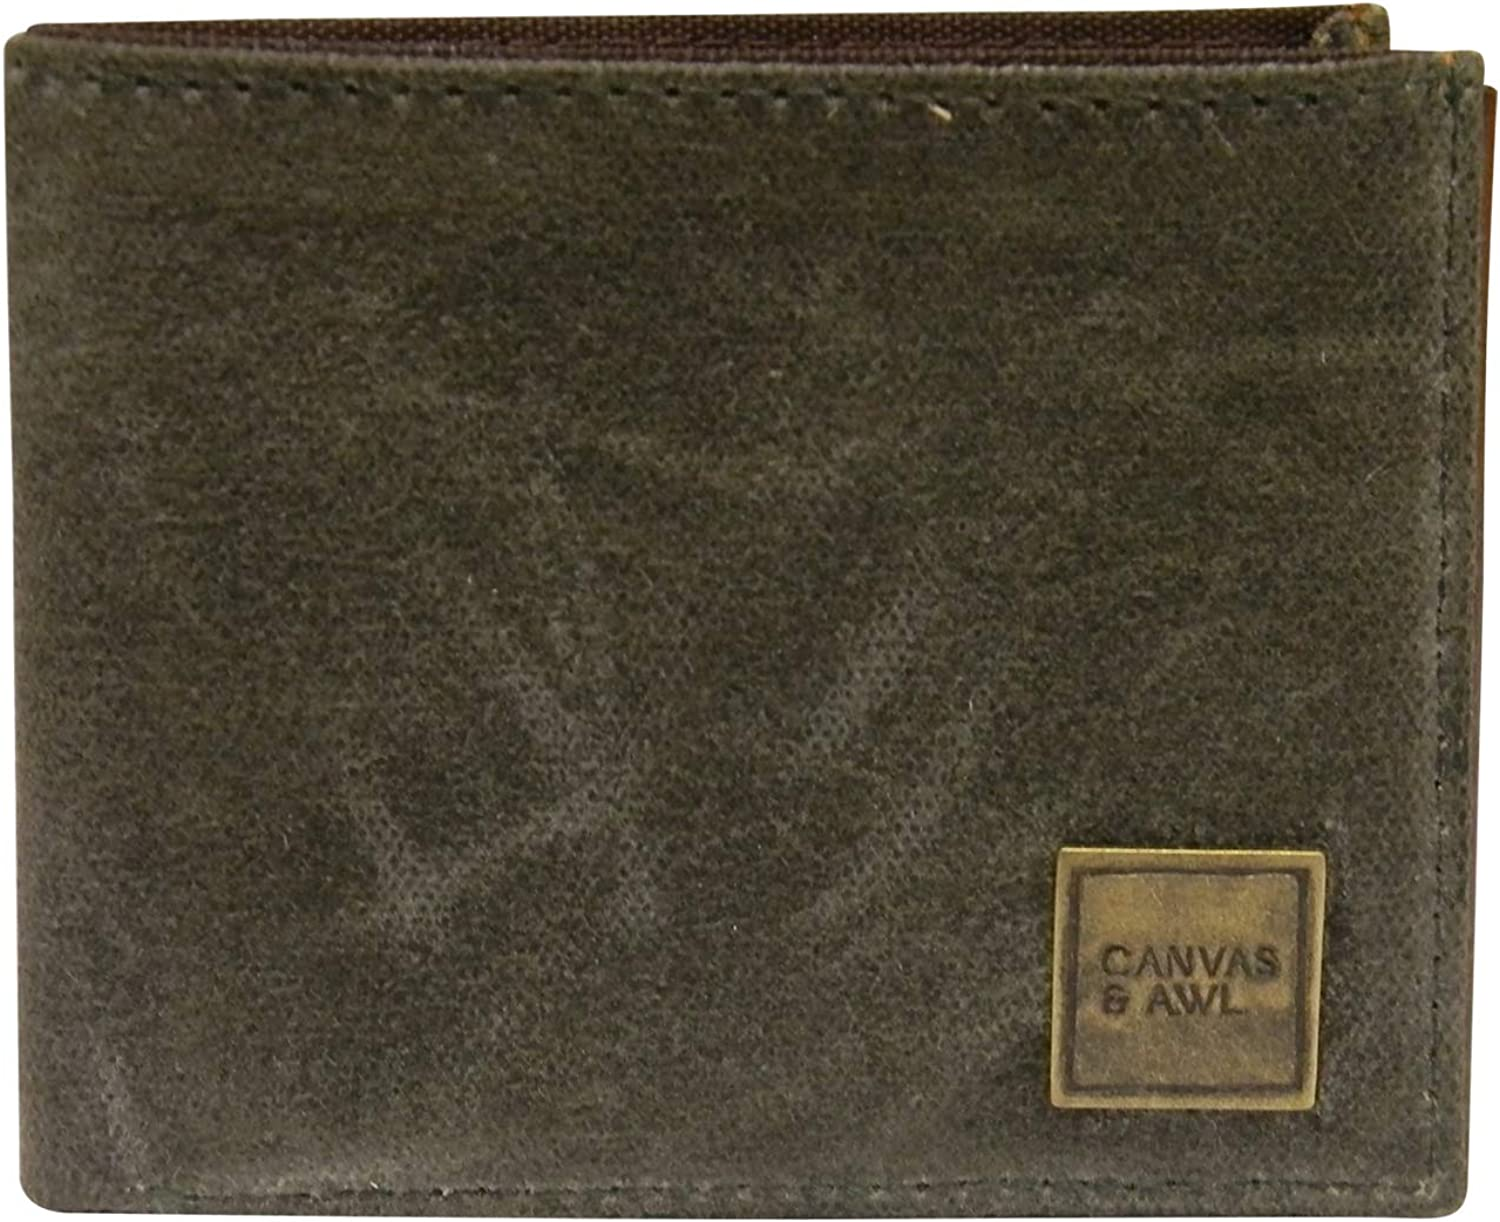 CANVAS & AWL Waxed Canvas & Leather Slim Bifold Wallet for Mens